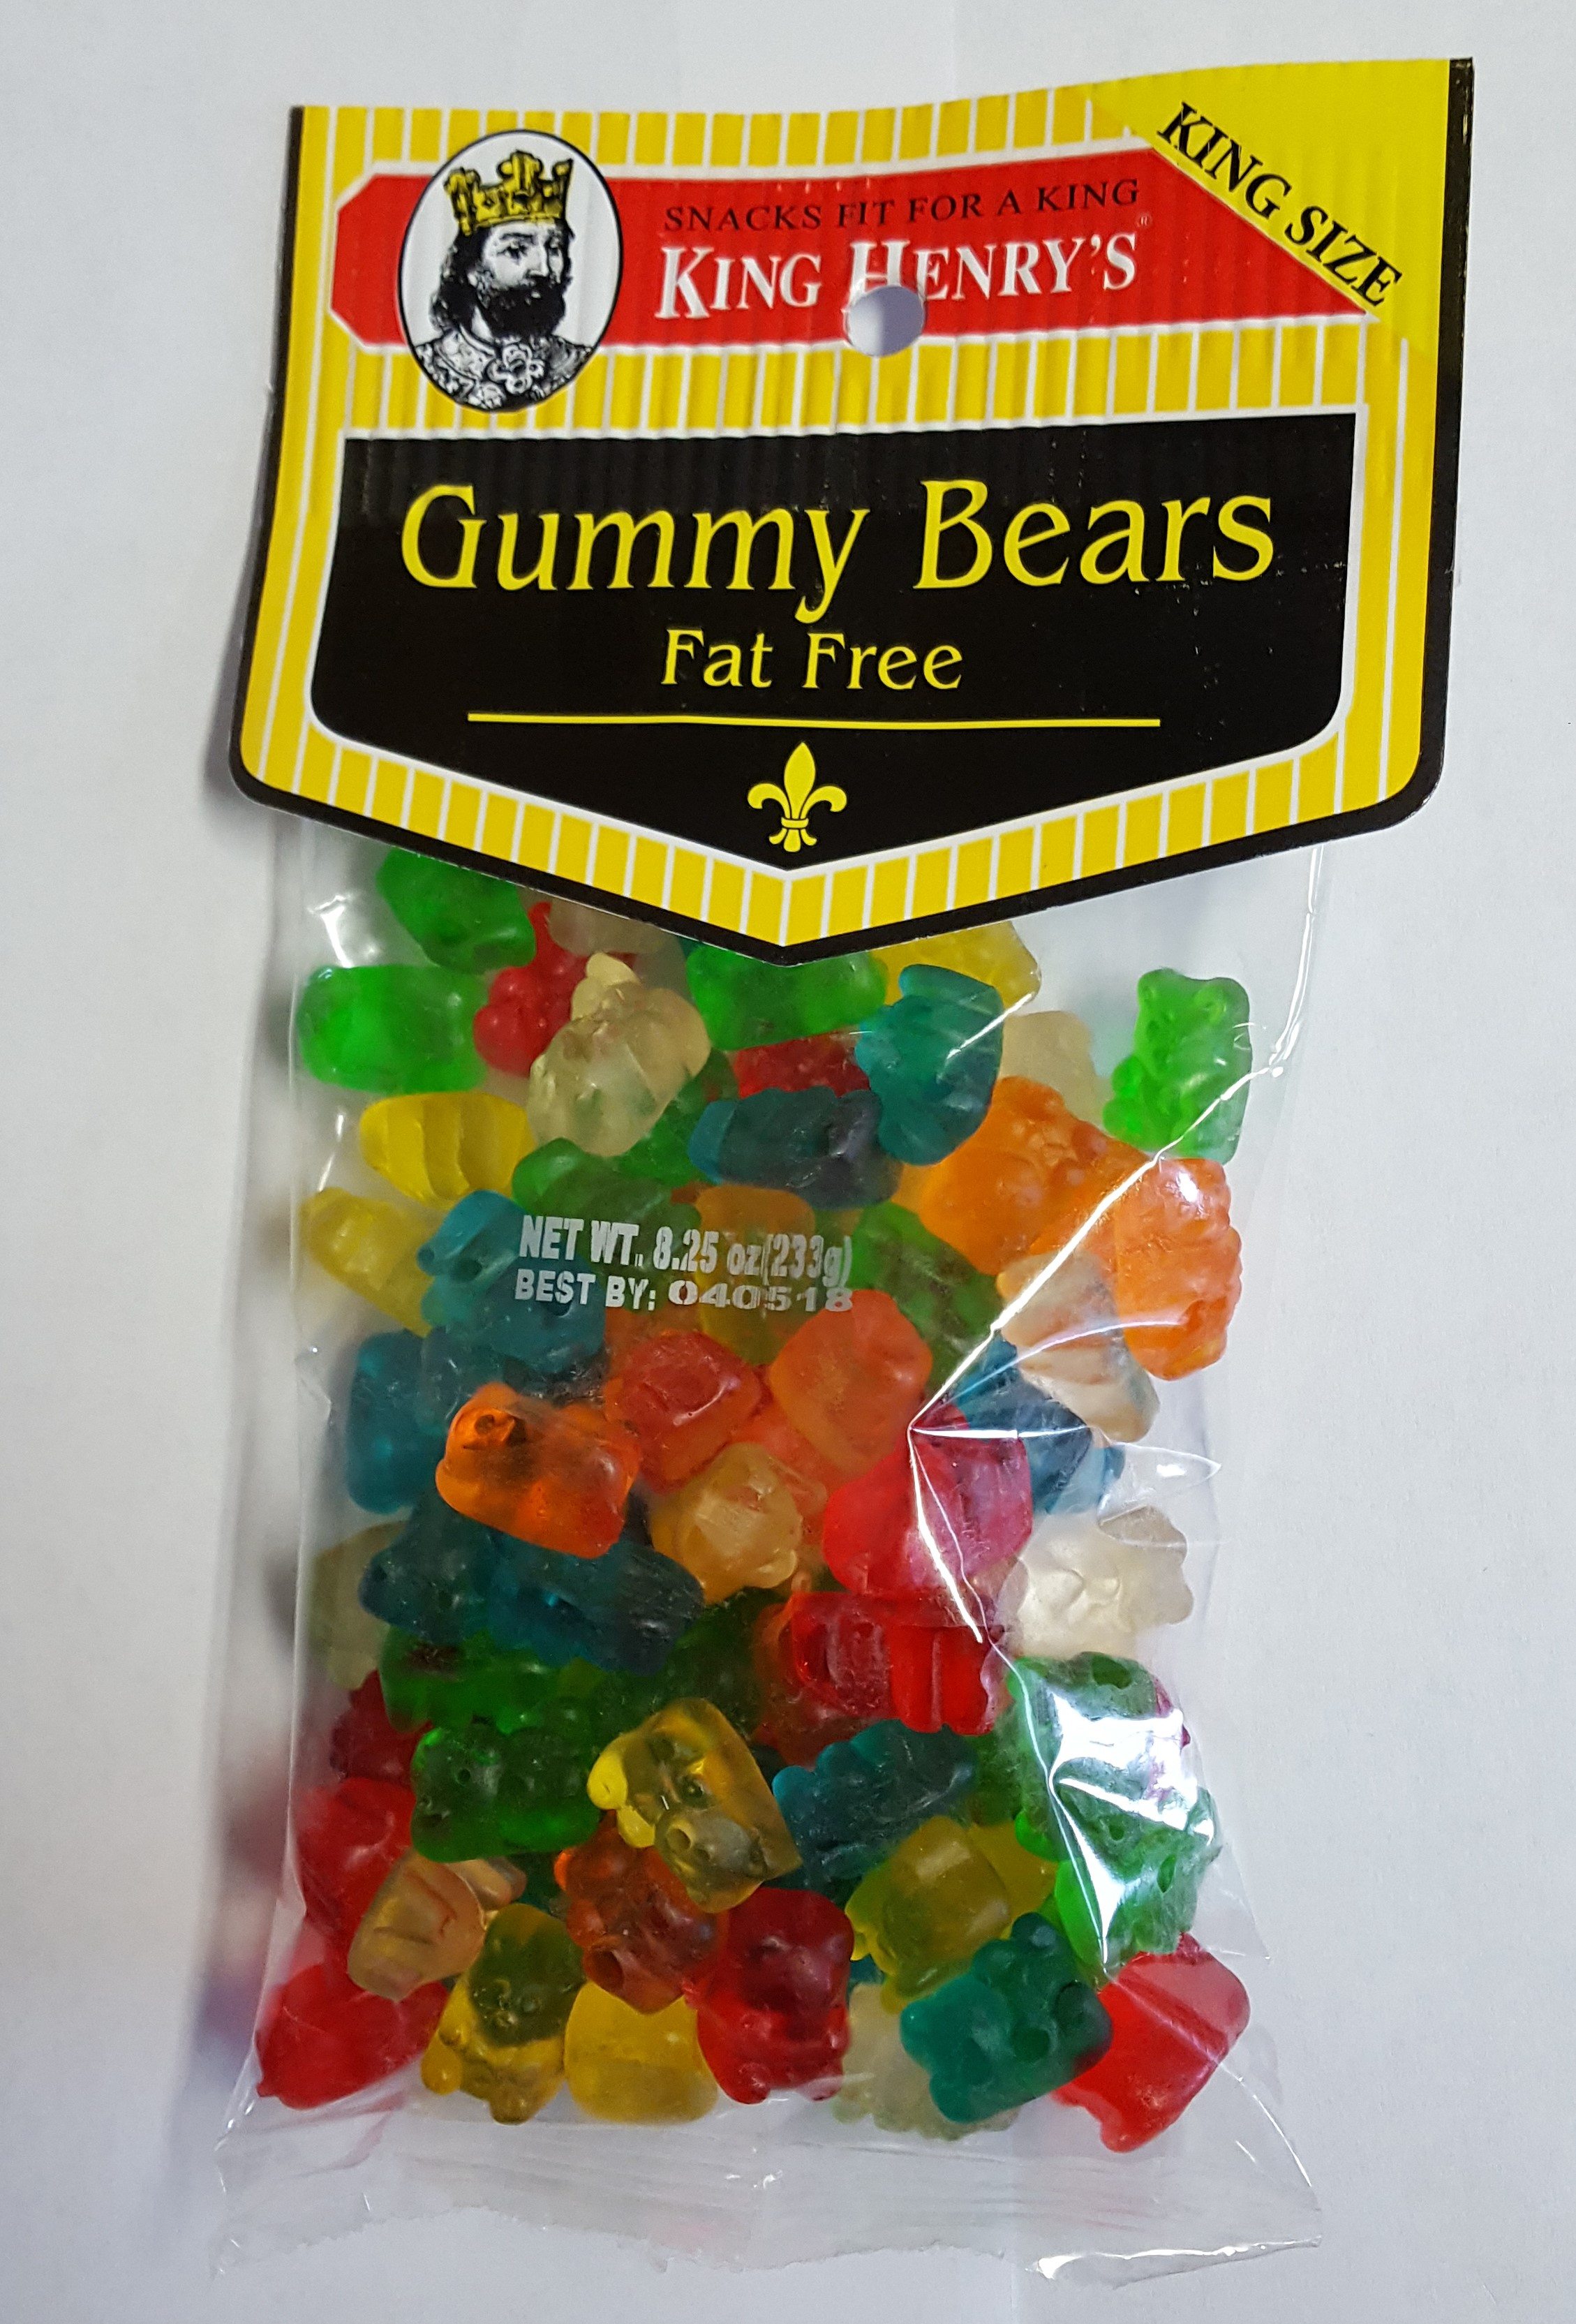 King Henry's Gummy Bears